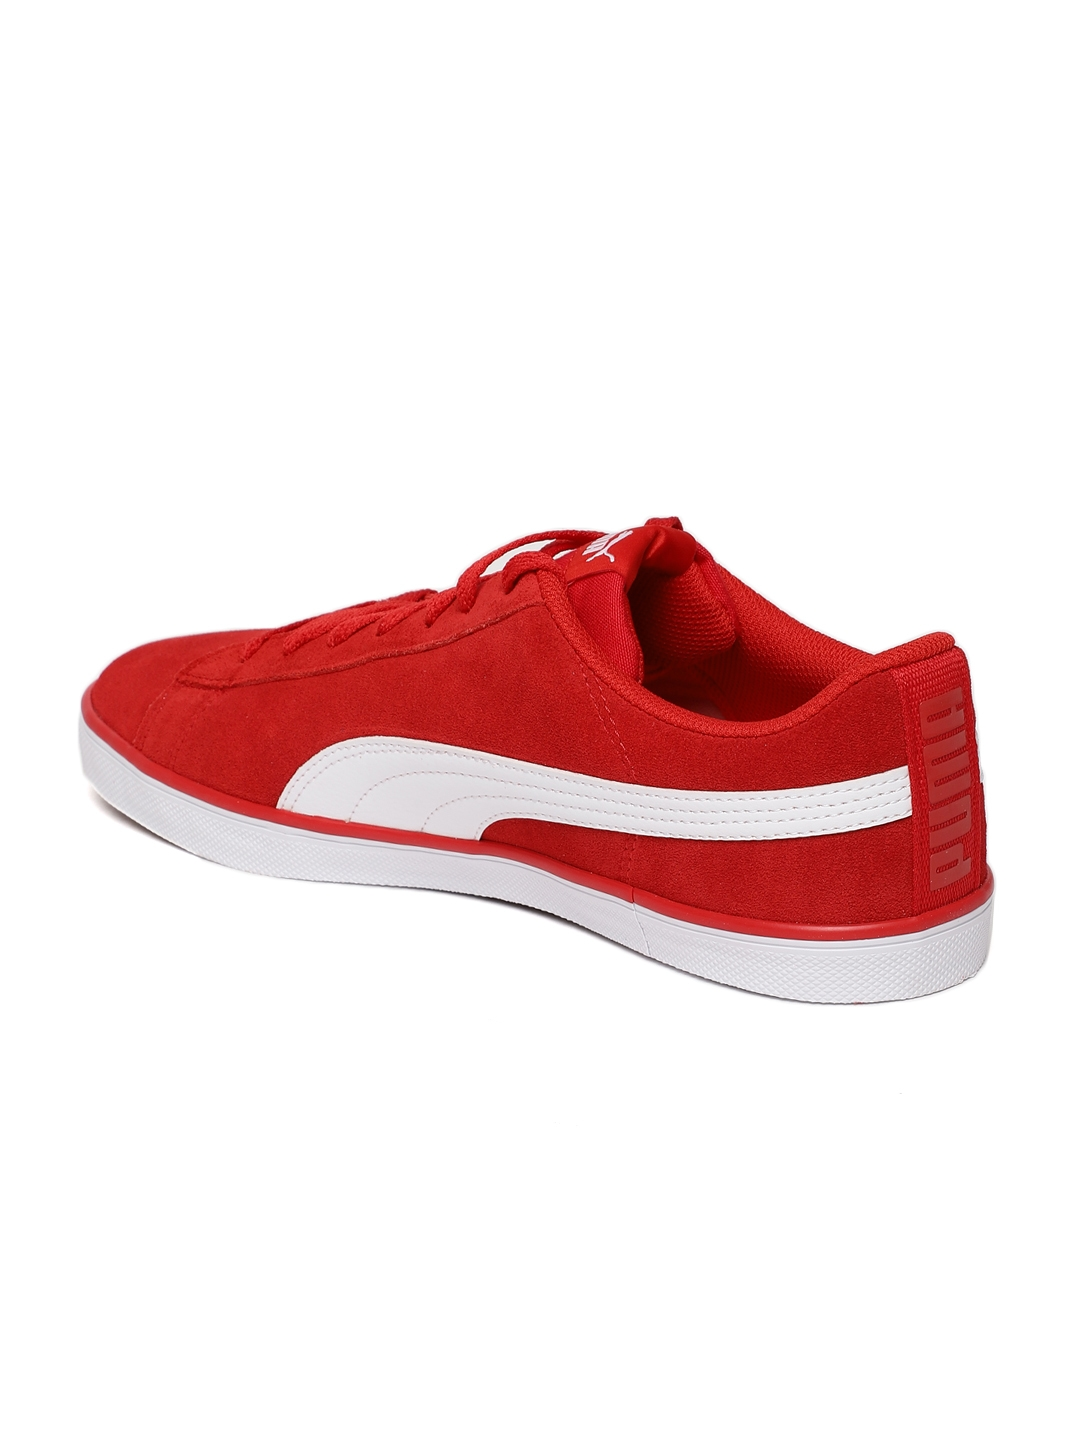 Suede Casual Urban Plus Shoes Men Sd Buy For Sneakers Red Puma wTY8PqB